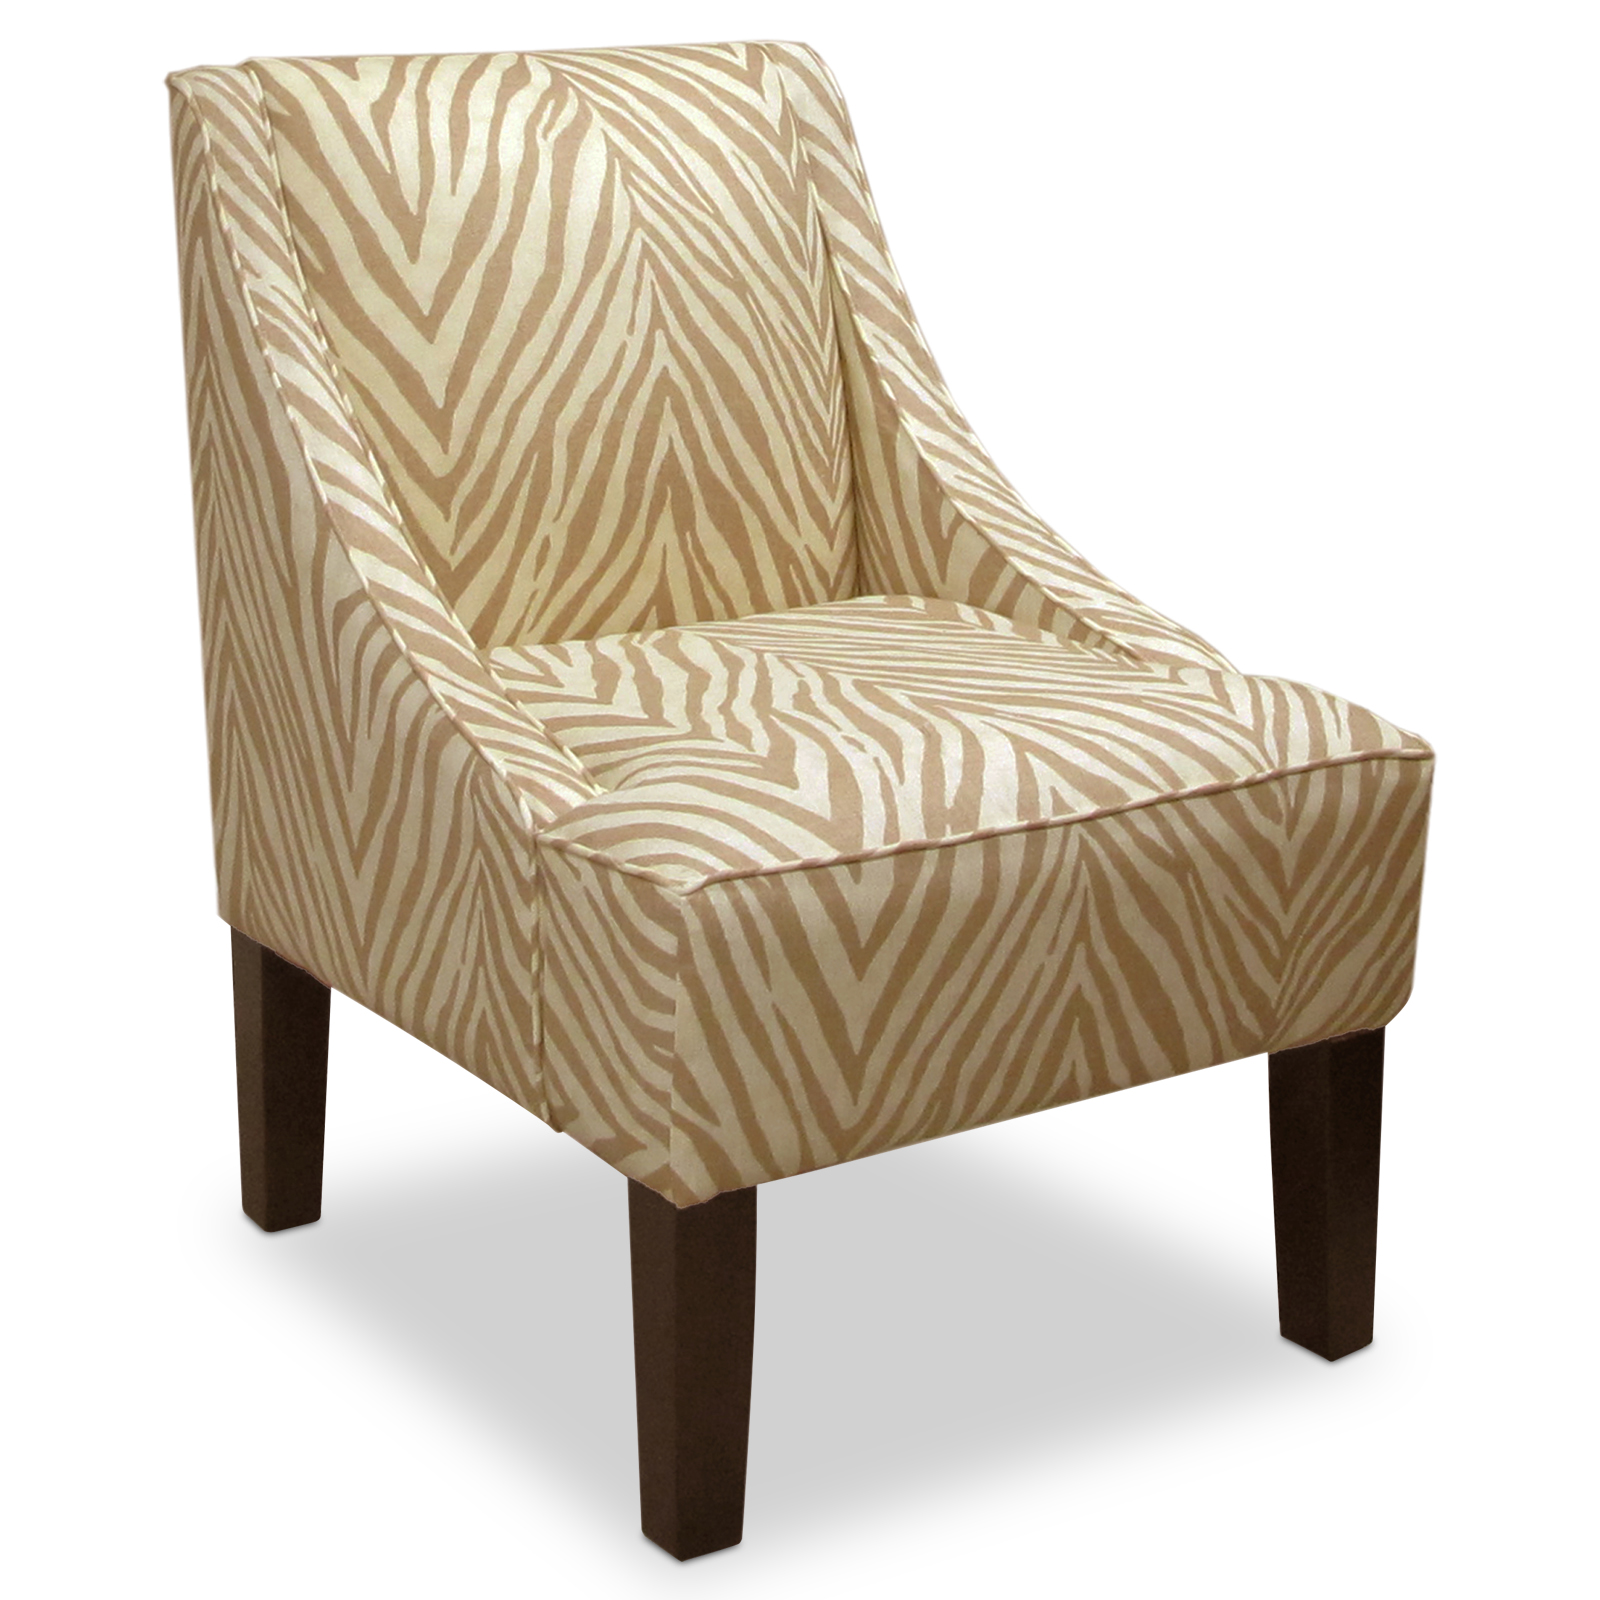 Sudan Camel Swoop Arm Chair Accent Chairs At Hayneedle